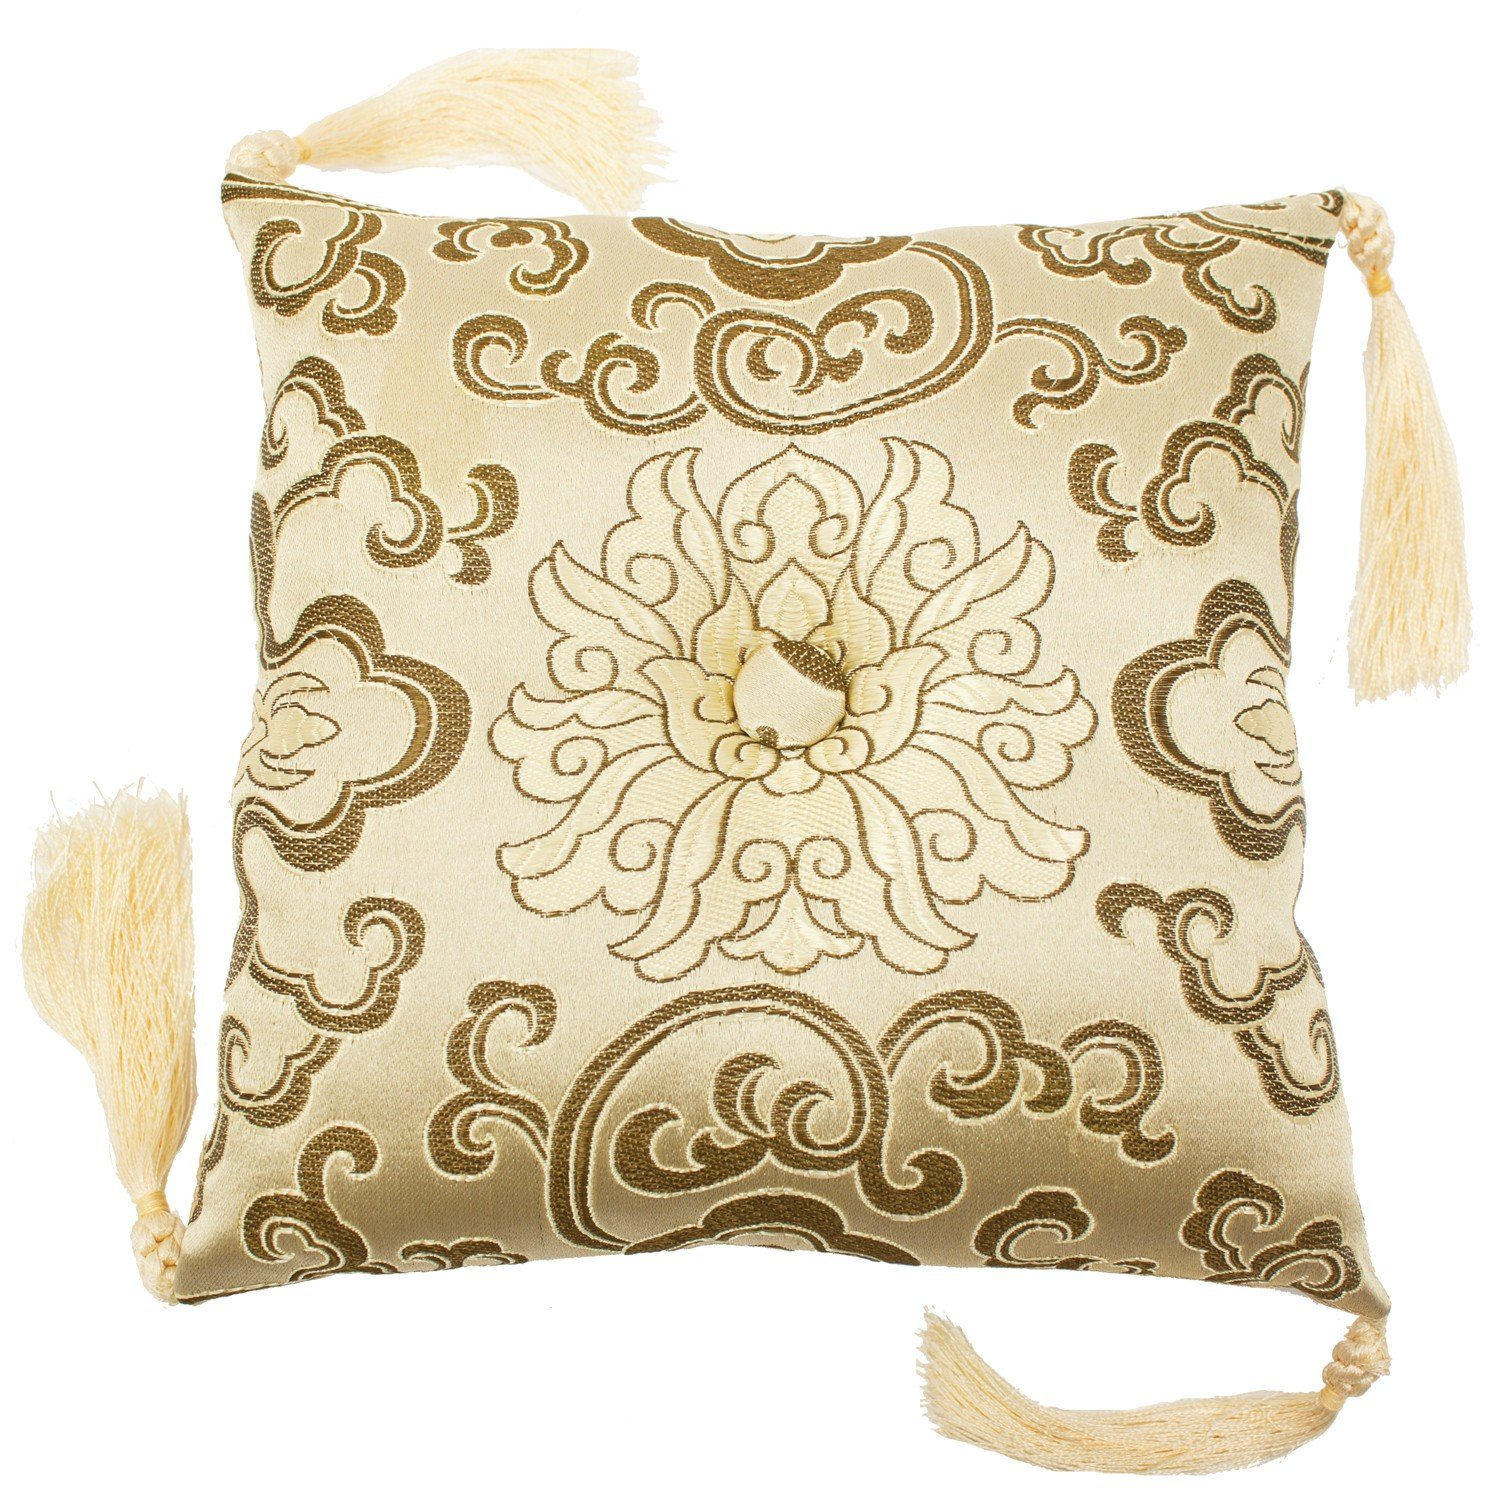 7 inch Lotus Singing Bowl Cushion